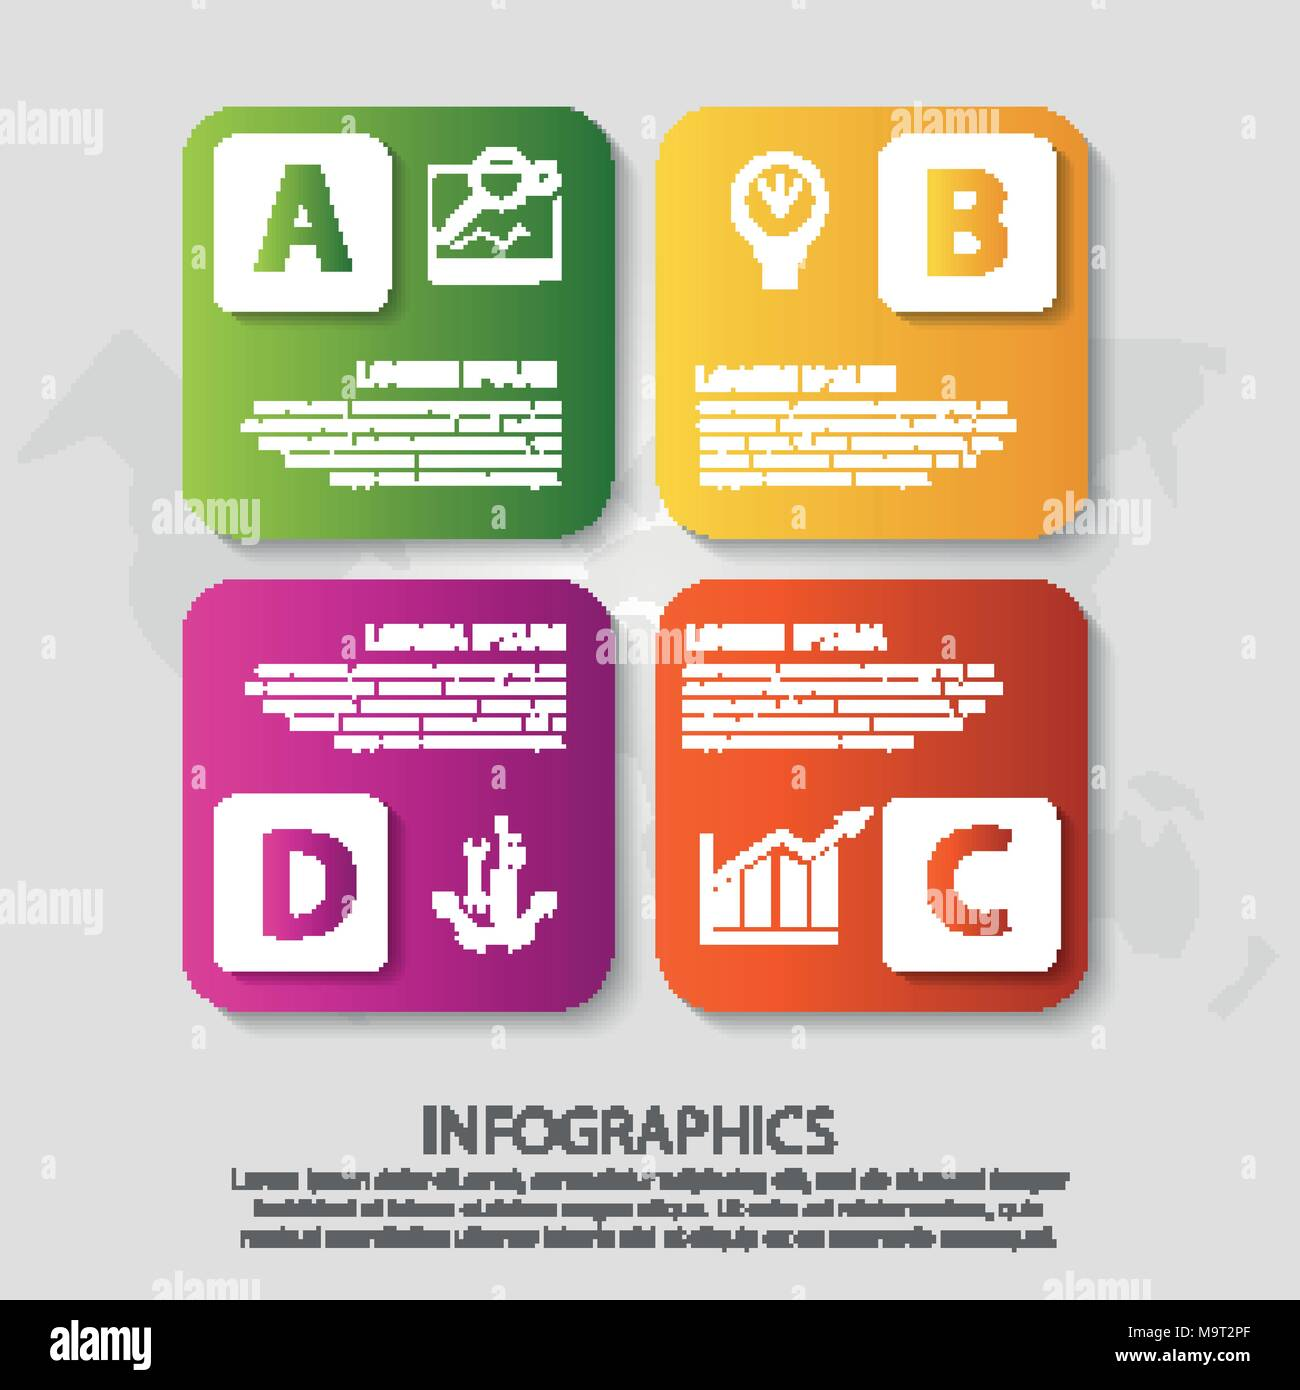 grindhouse poster template - tex presentation template image collections template